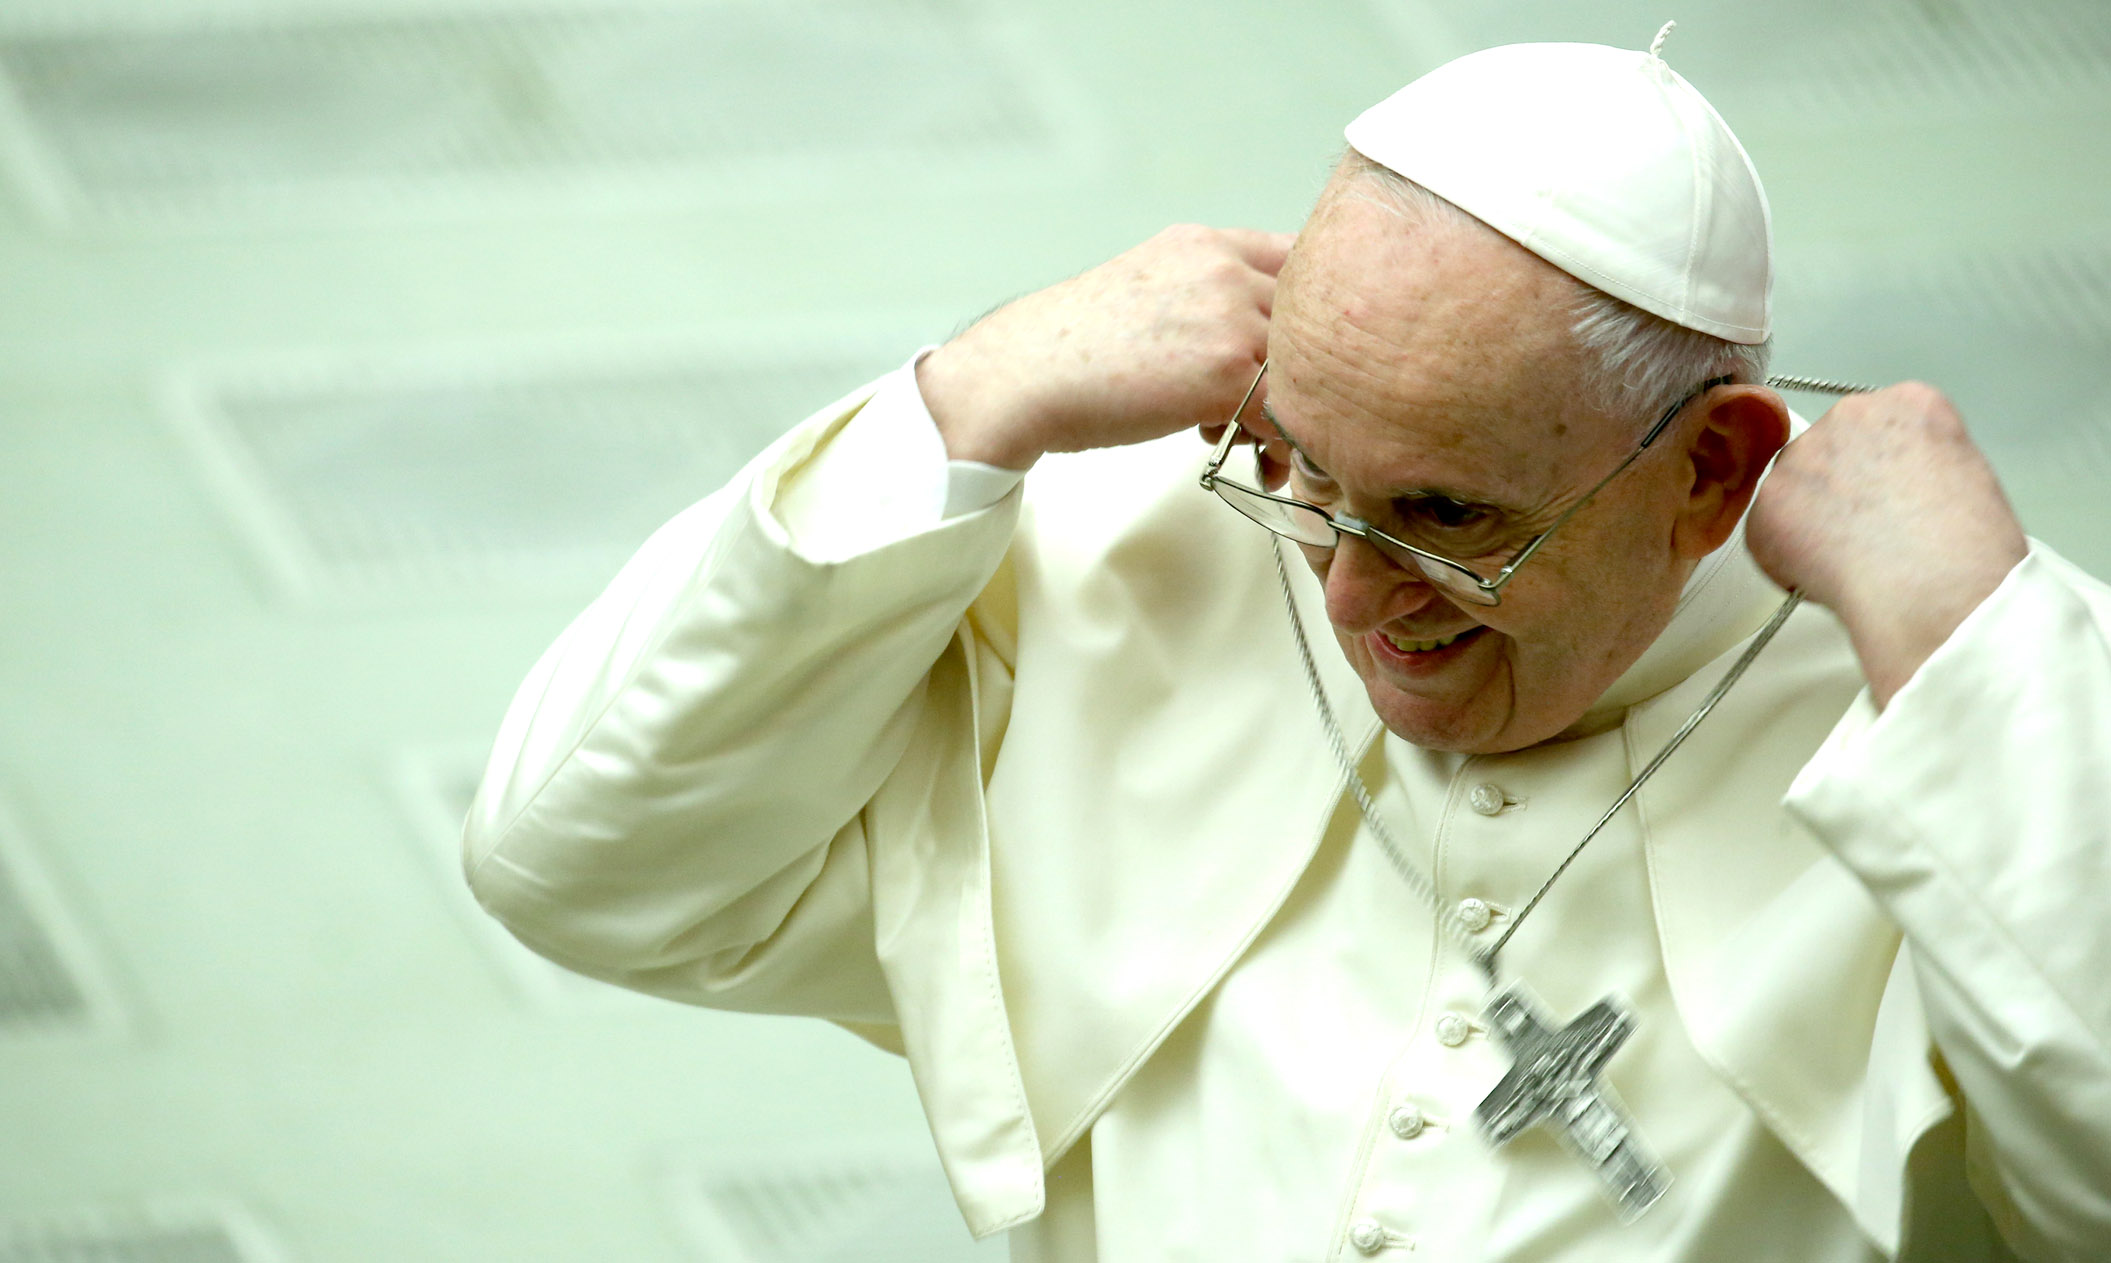 The Pope keeps getting busted for liking sexy model photos on Instagram